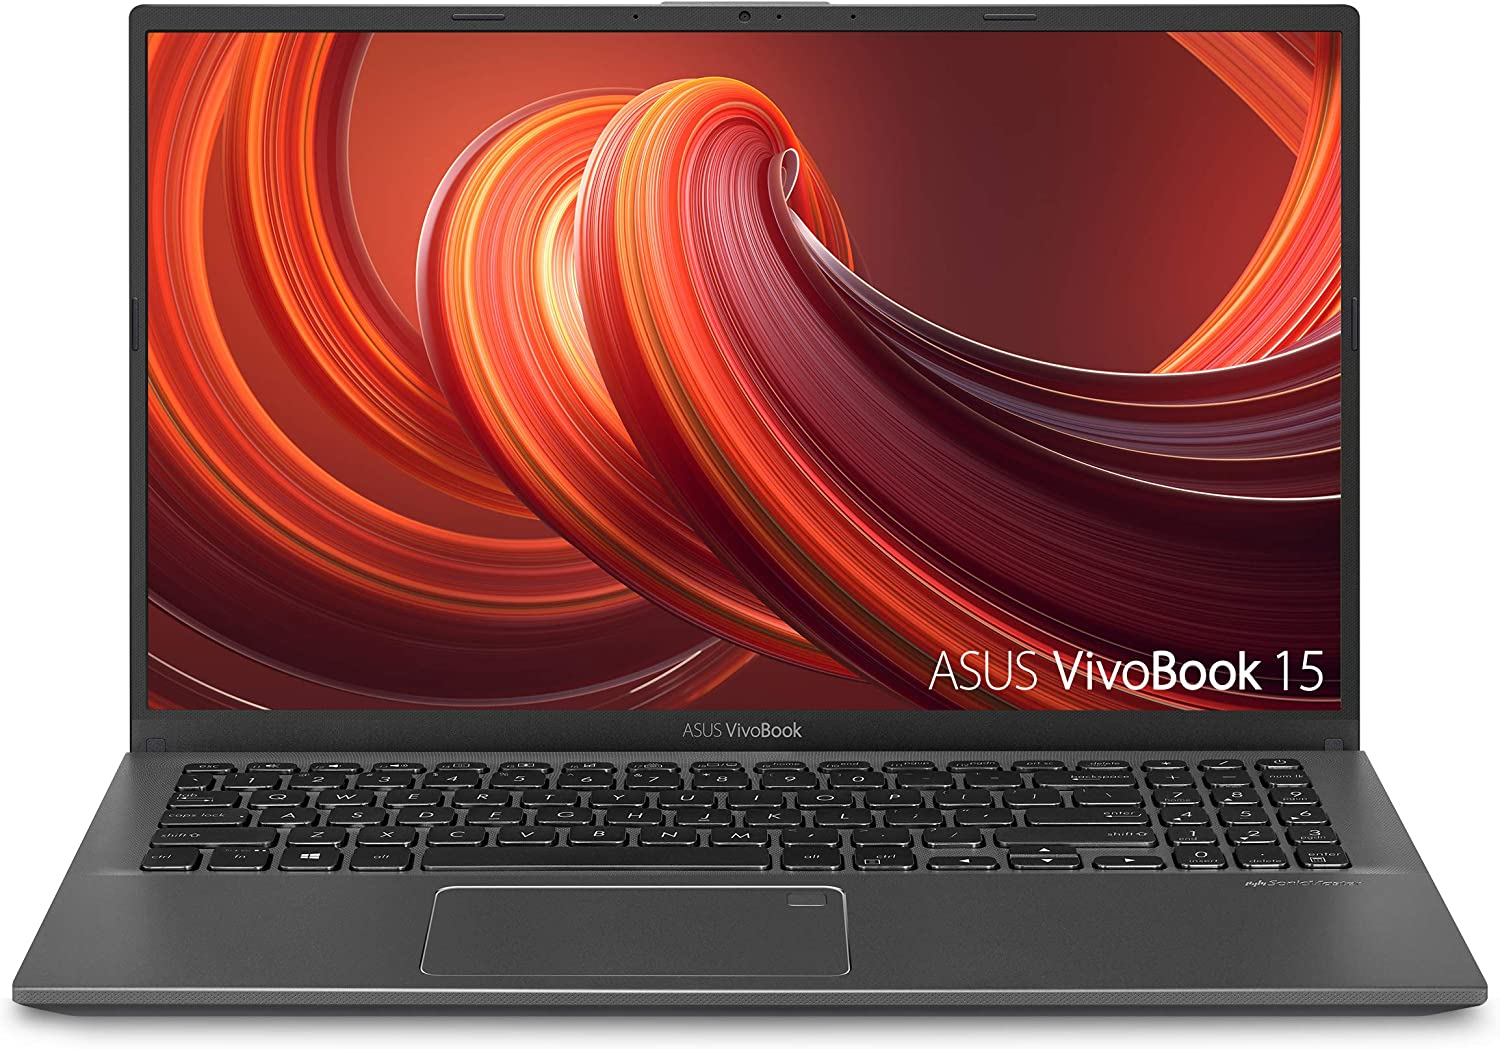 "ASUS VivoBook 15 Thin and Light Laptop, 15.6"" FHD Display, Intel i3-1005G1 CPU, 8GB RAM, 128GB SSD, Backlit Keyboard, Fingerprint, Windows 10 Home in S Mode, Slate Gray,"